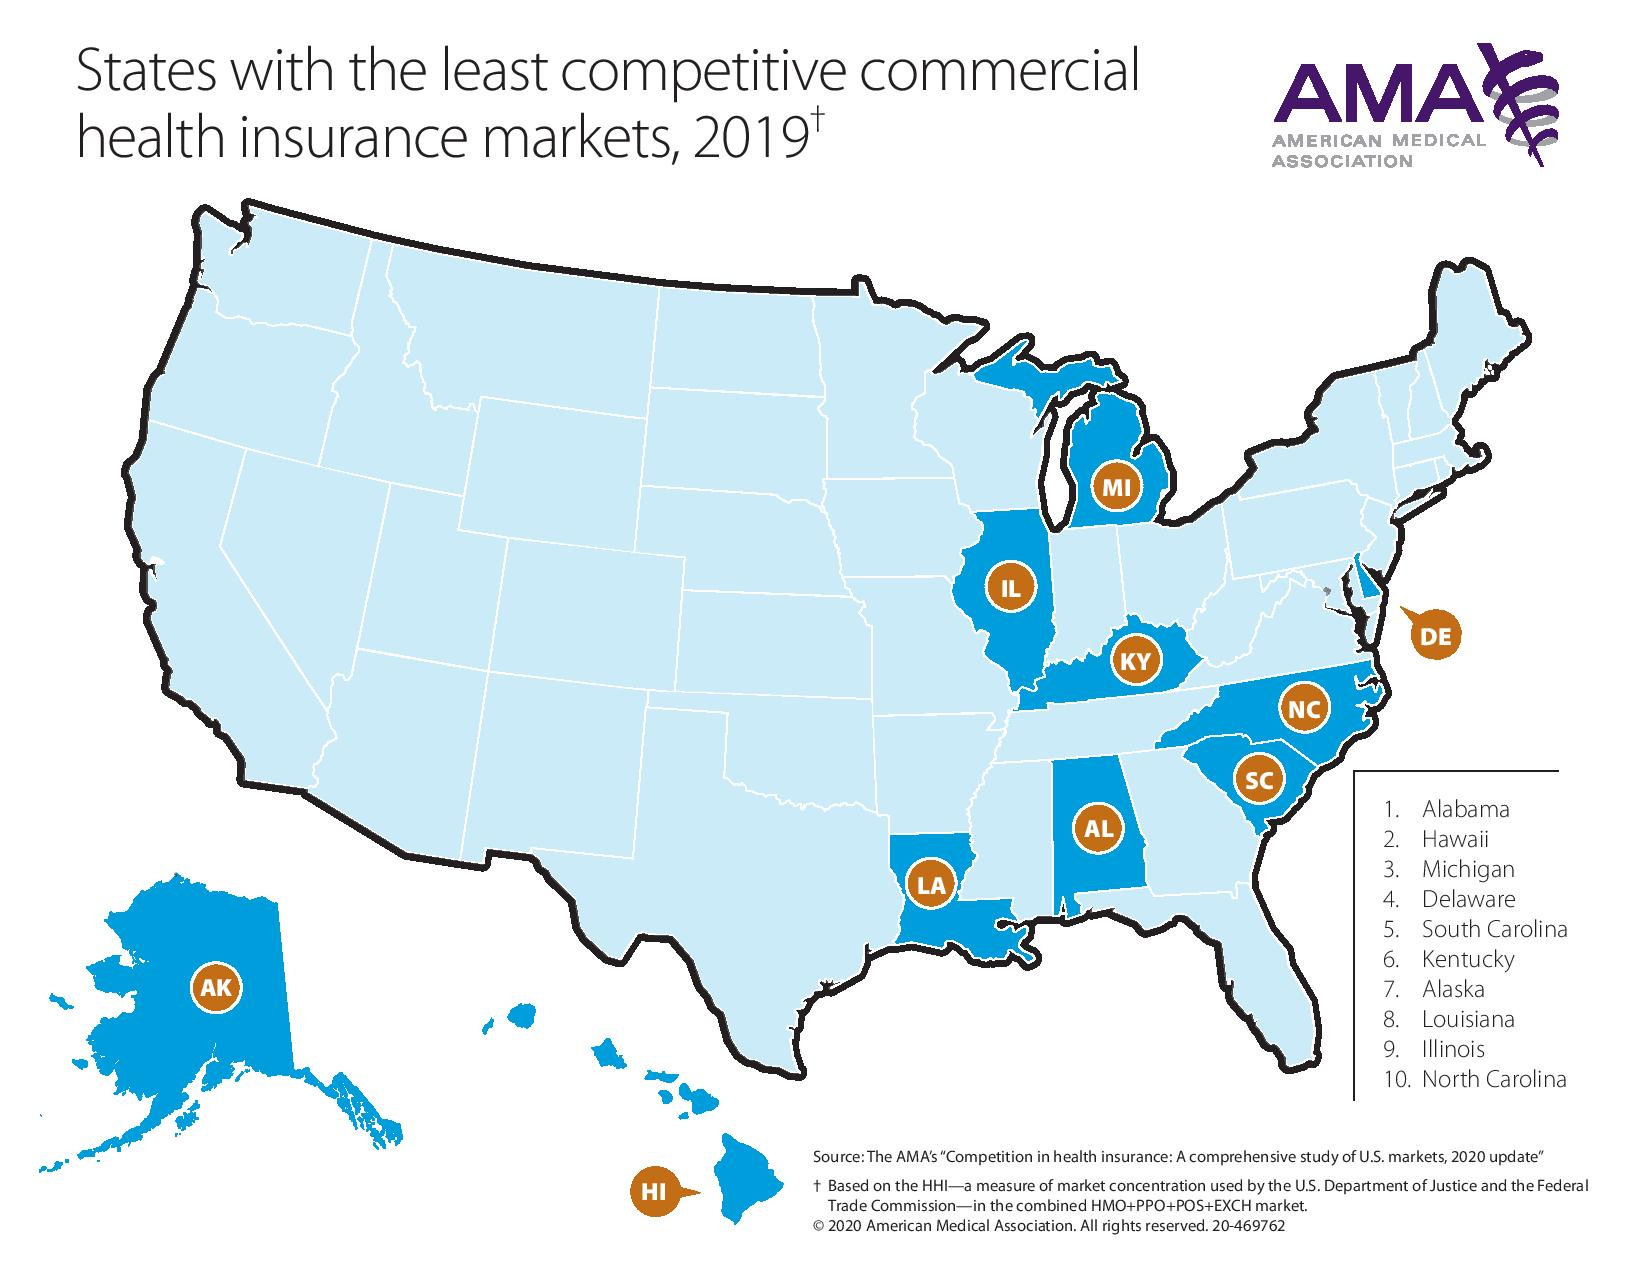 Graphic of map indicating 10 states with least competitive commercial markets.